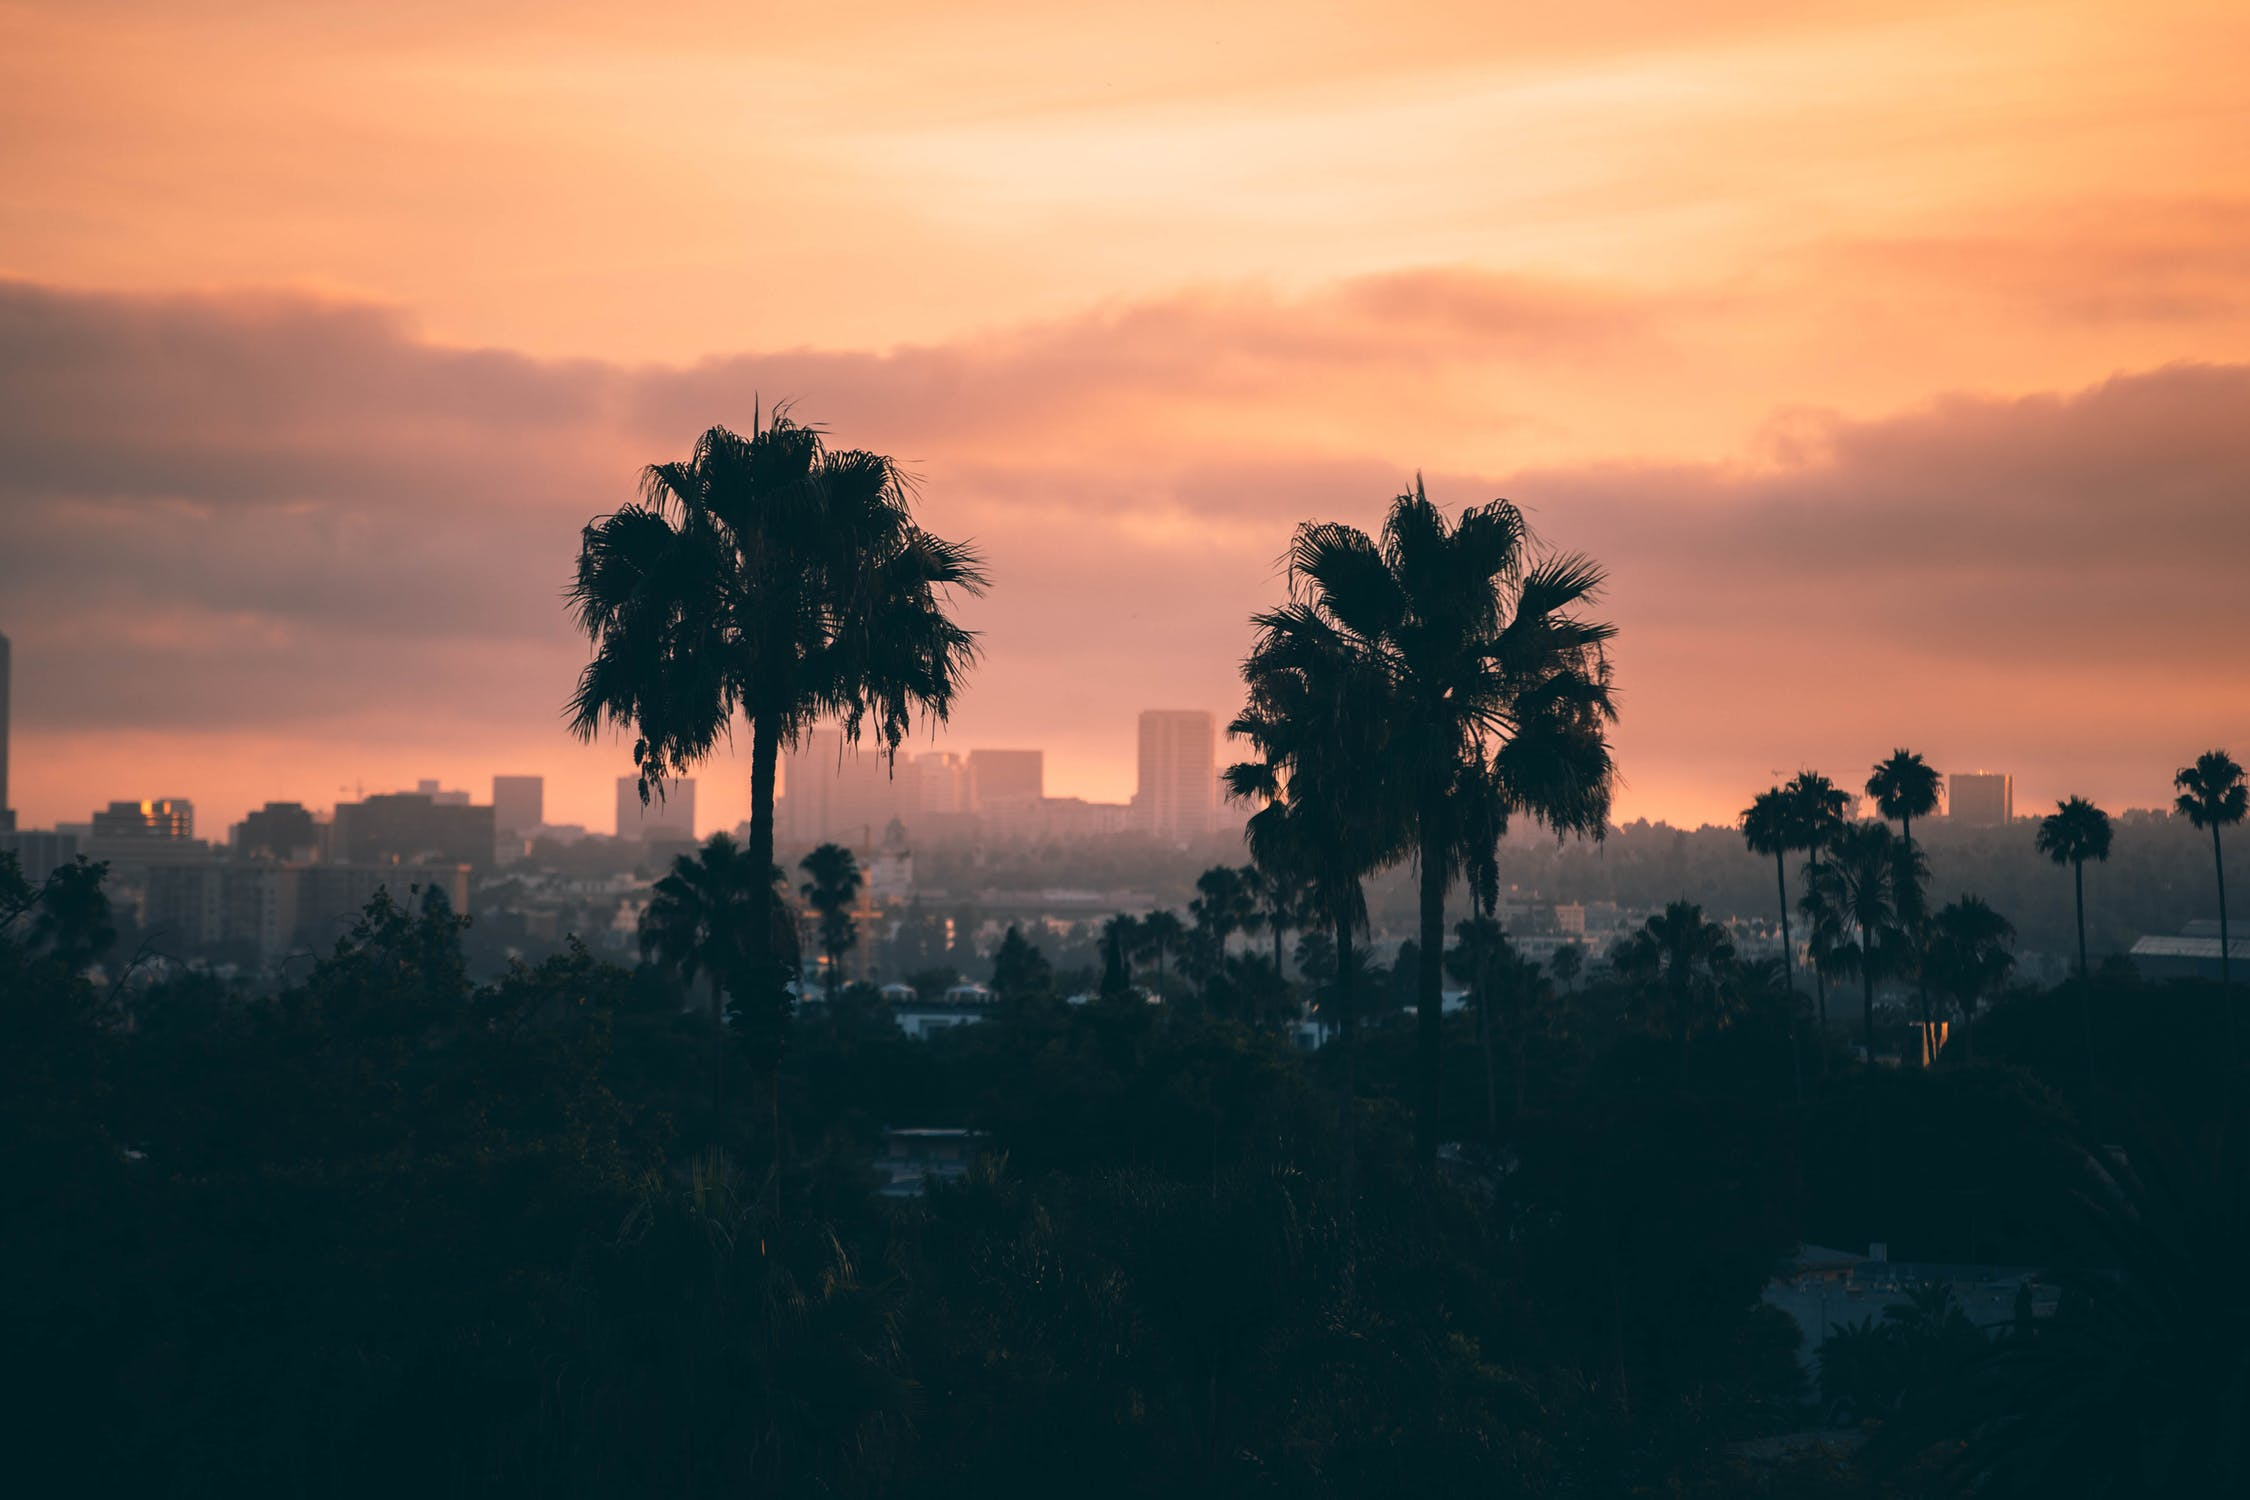 cosa vedere a bel Air a Los Angeles